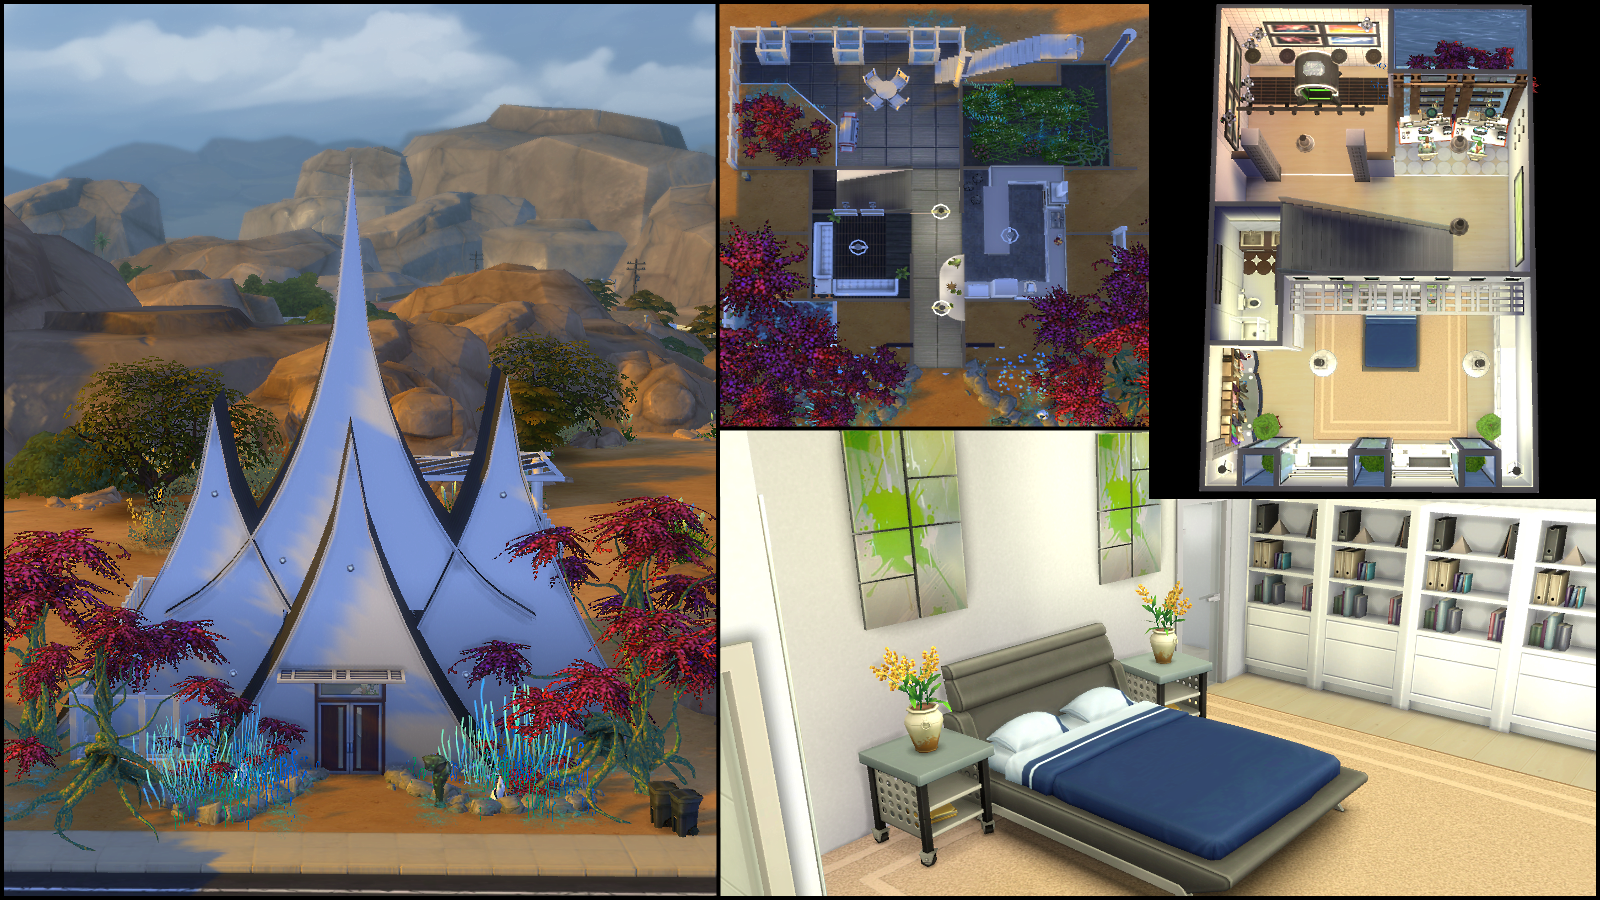 The Sims 4 Gallery Spotlight SimsVIP : Alien from simsvip.com size 1600 x 900 png 3033kB